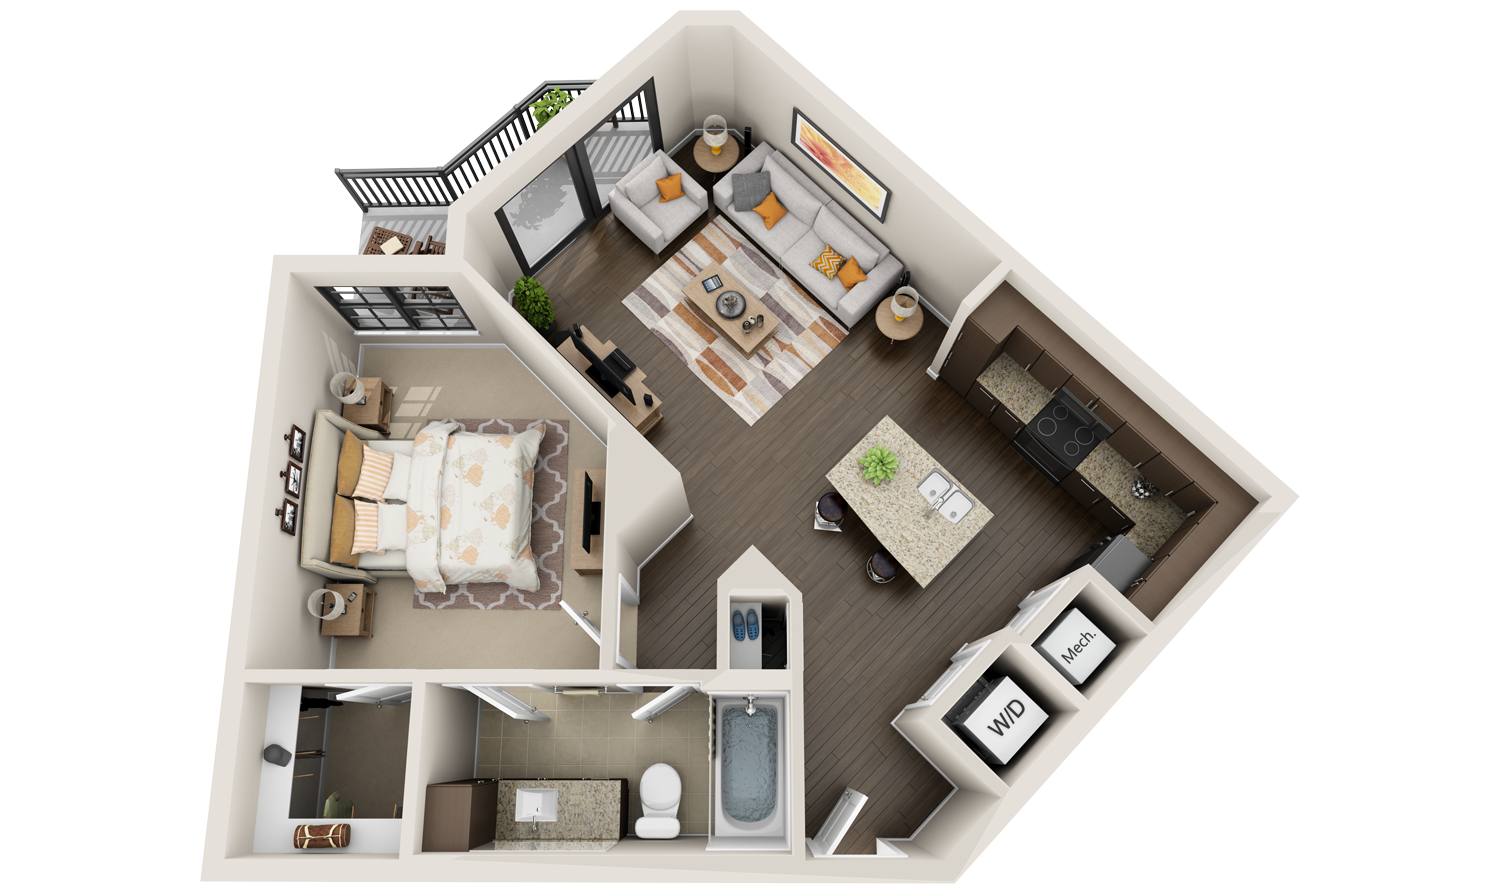 Apartment website design resident360 for 3d floor plan design